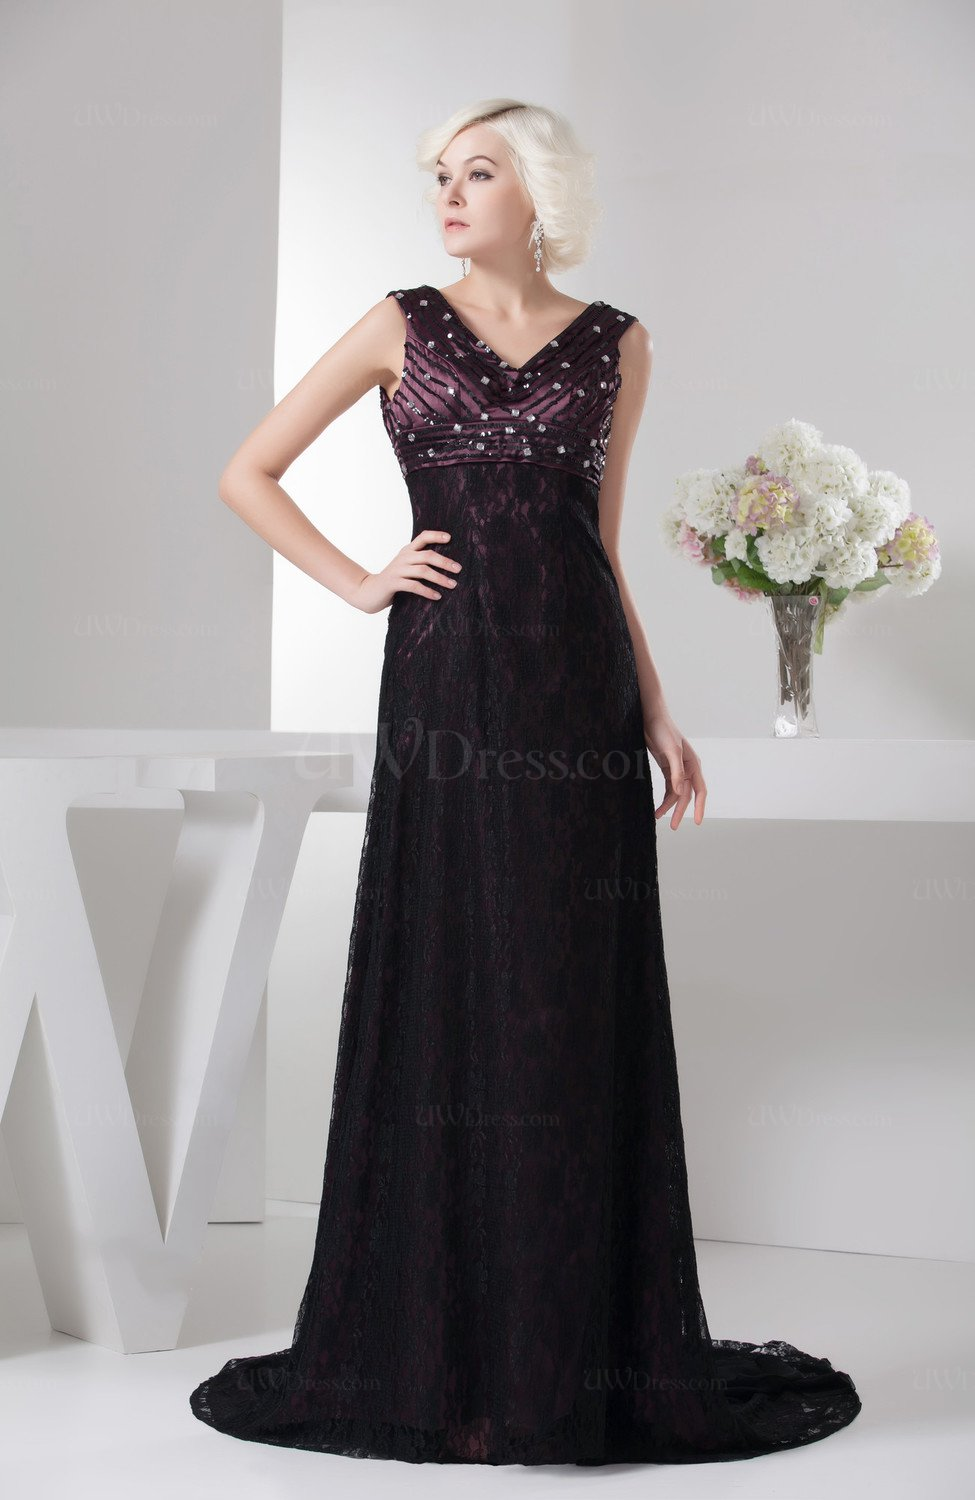 Wedding Guest Dresses Affordable : Lace wedding guest dress affordable empire spring dream